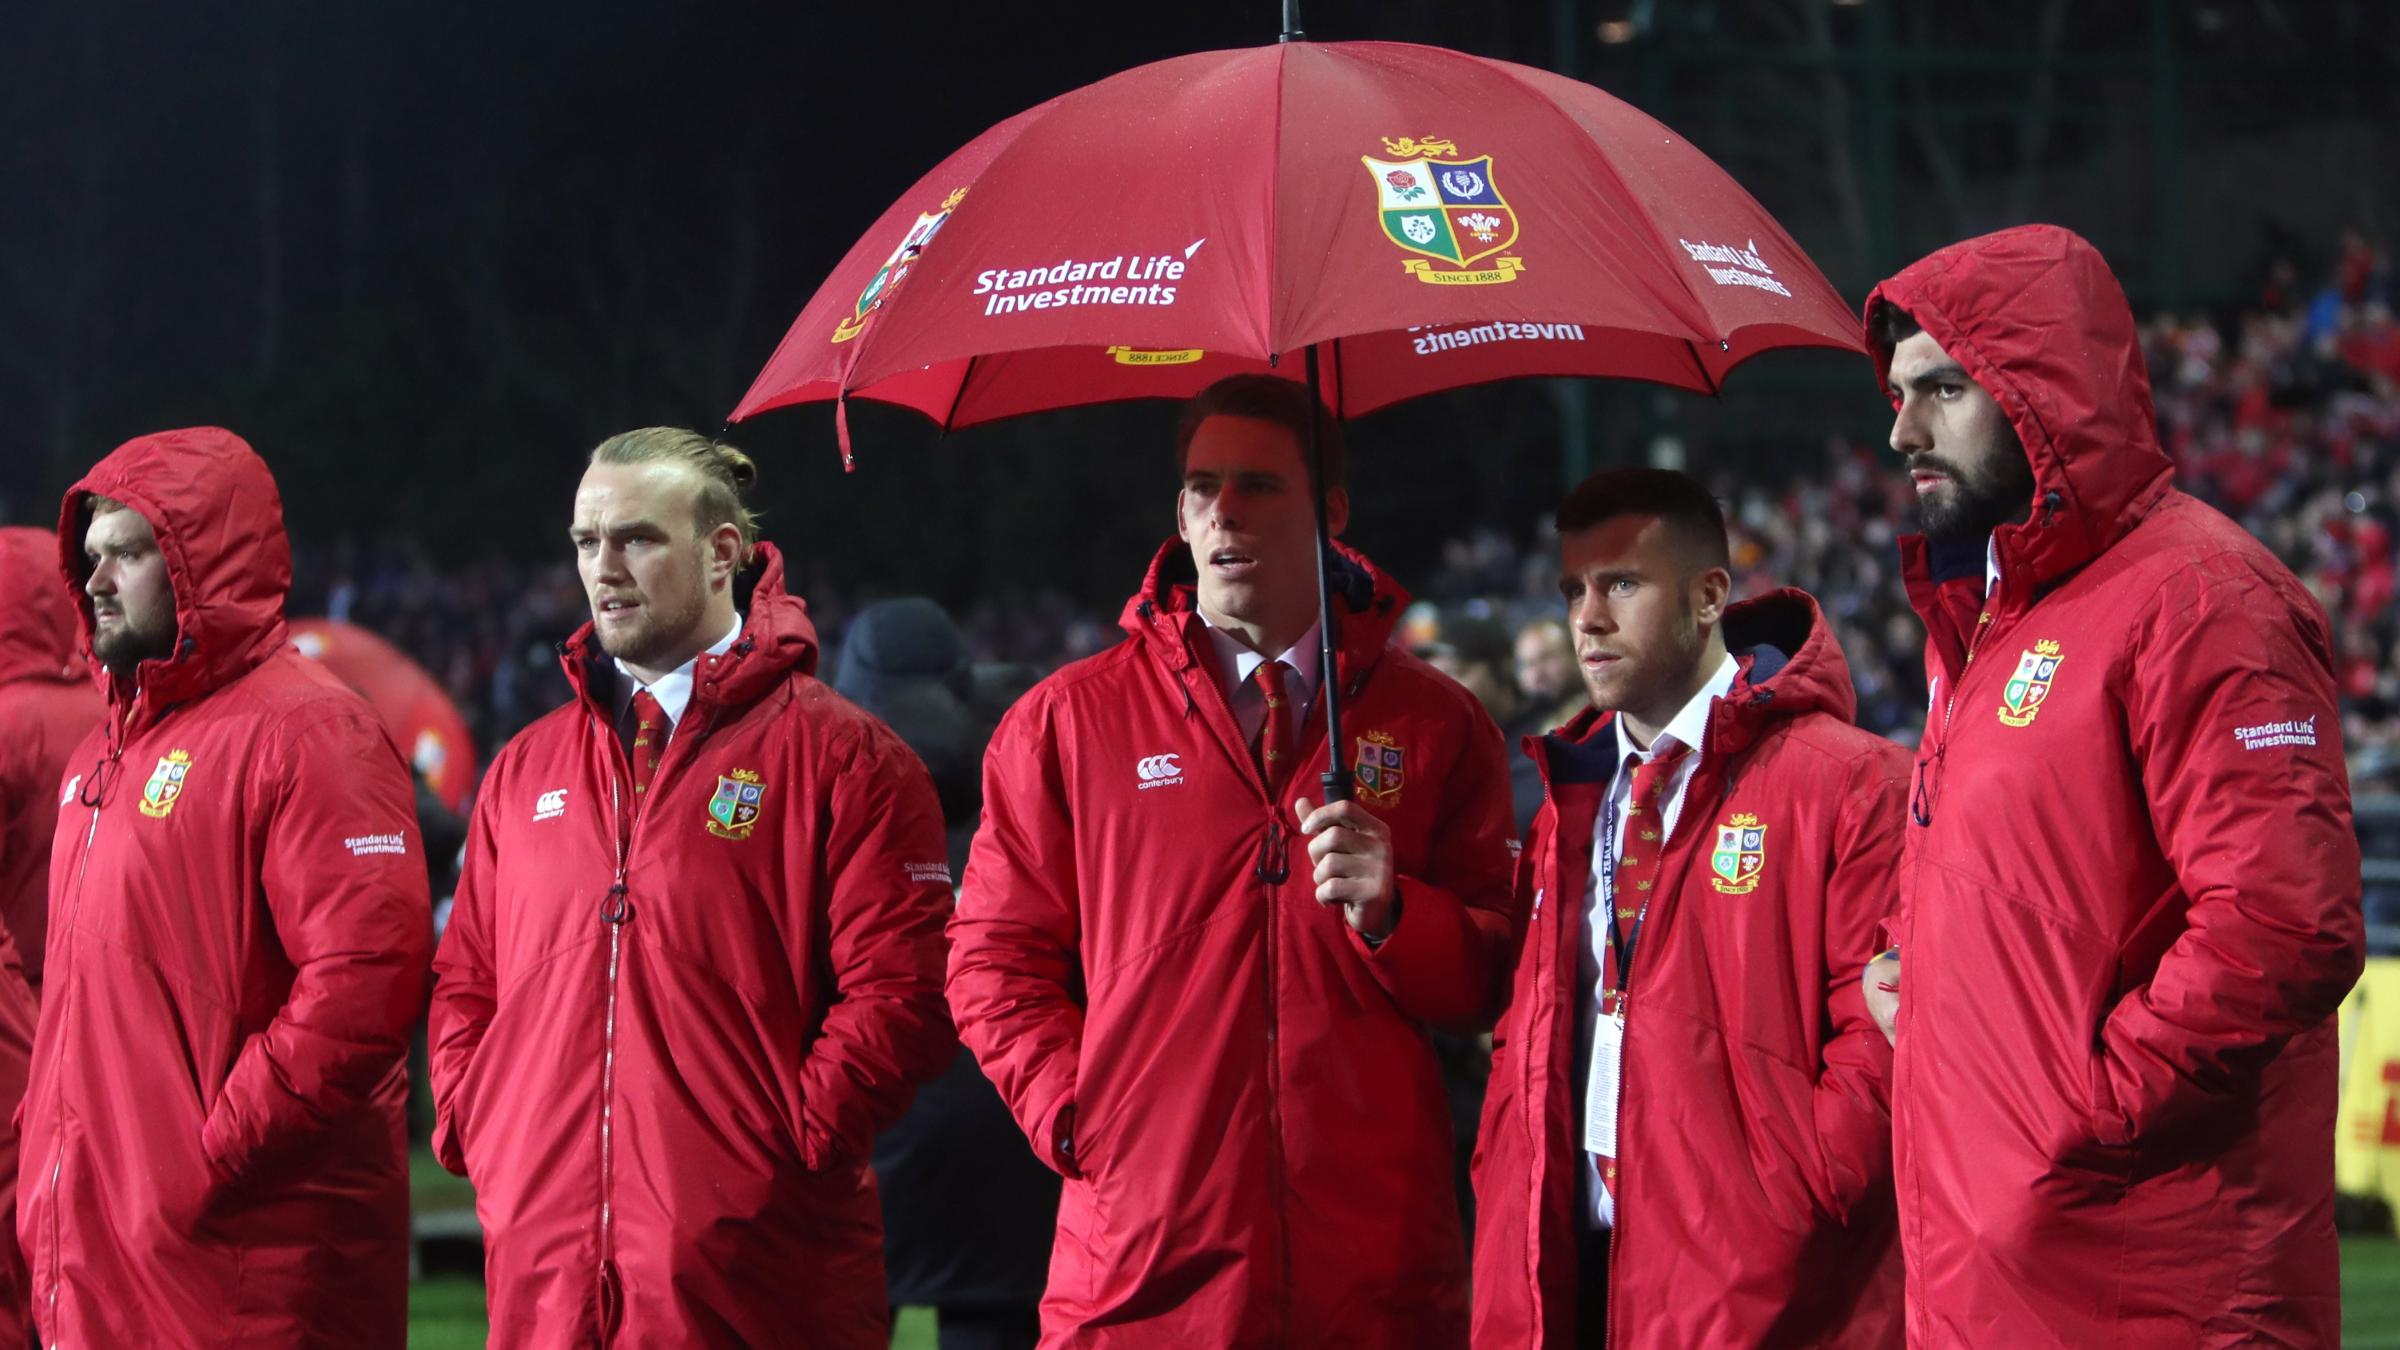 Warburton not guaranteed starting spot - Gatland